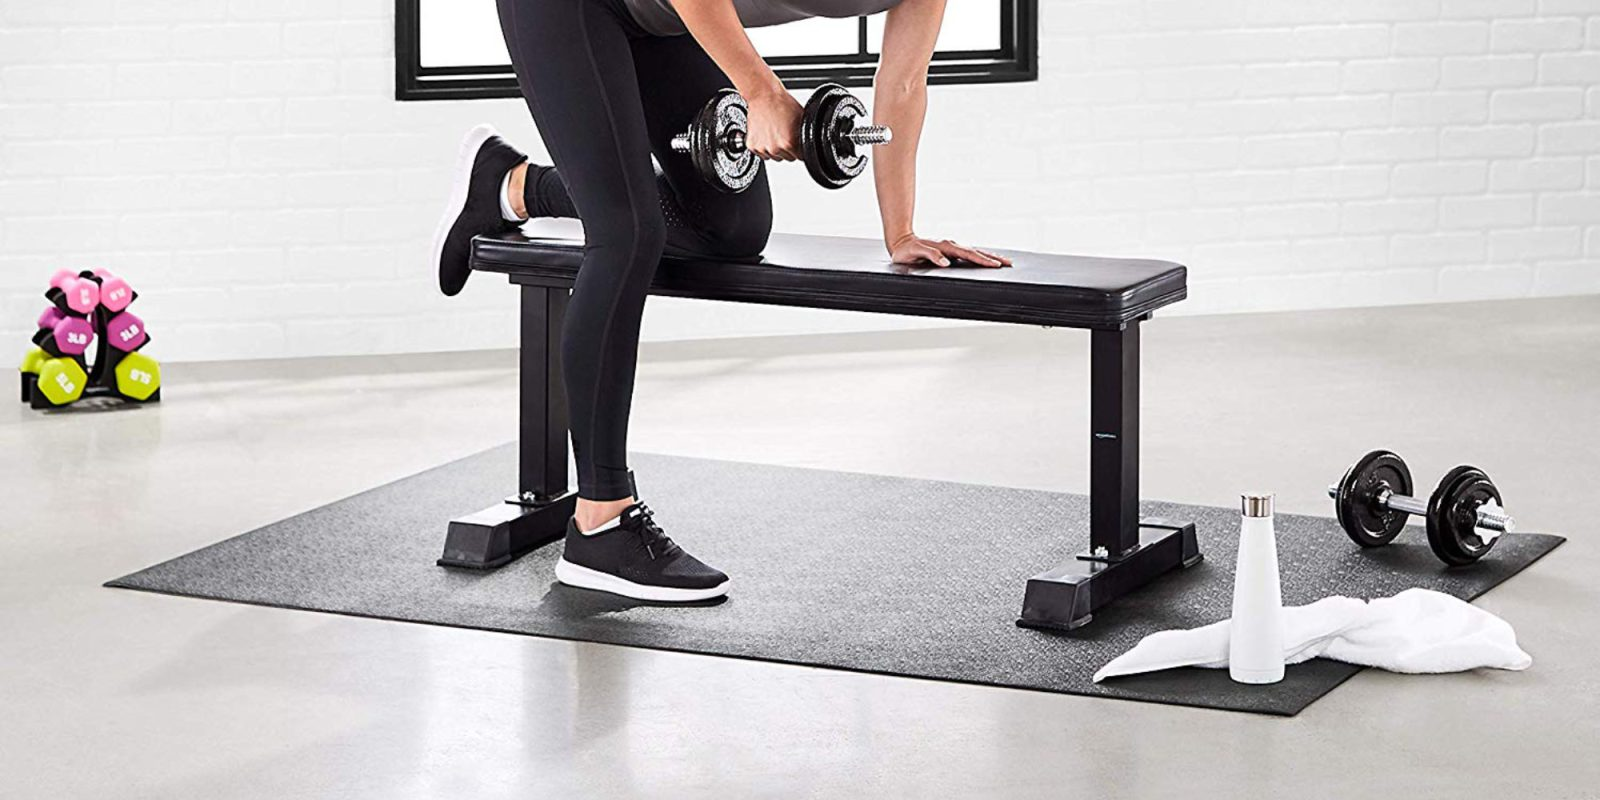 Protect floors with Amazon's Exercise Equipment + Treadmill Mat: $35 (Save 50%)